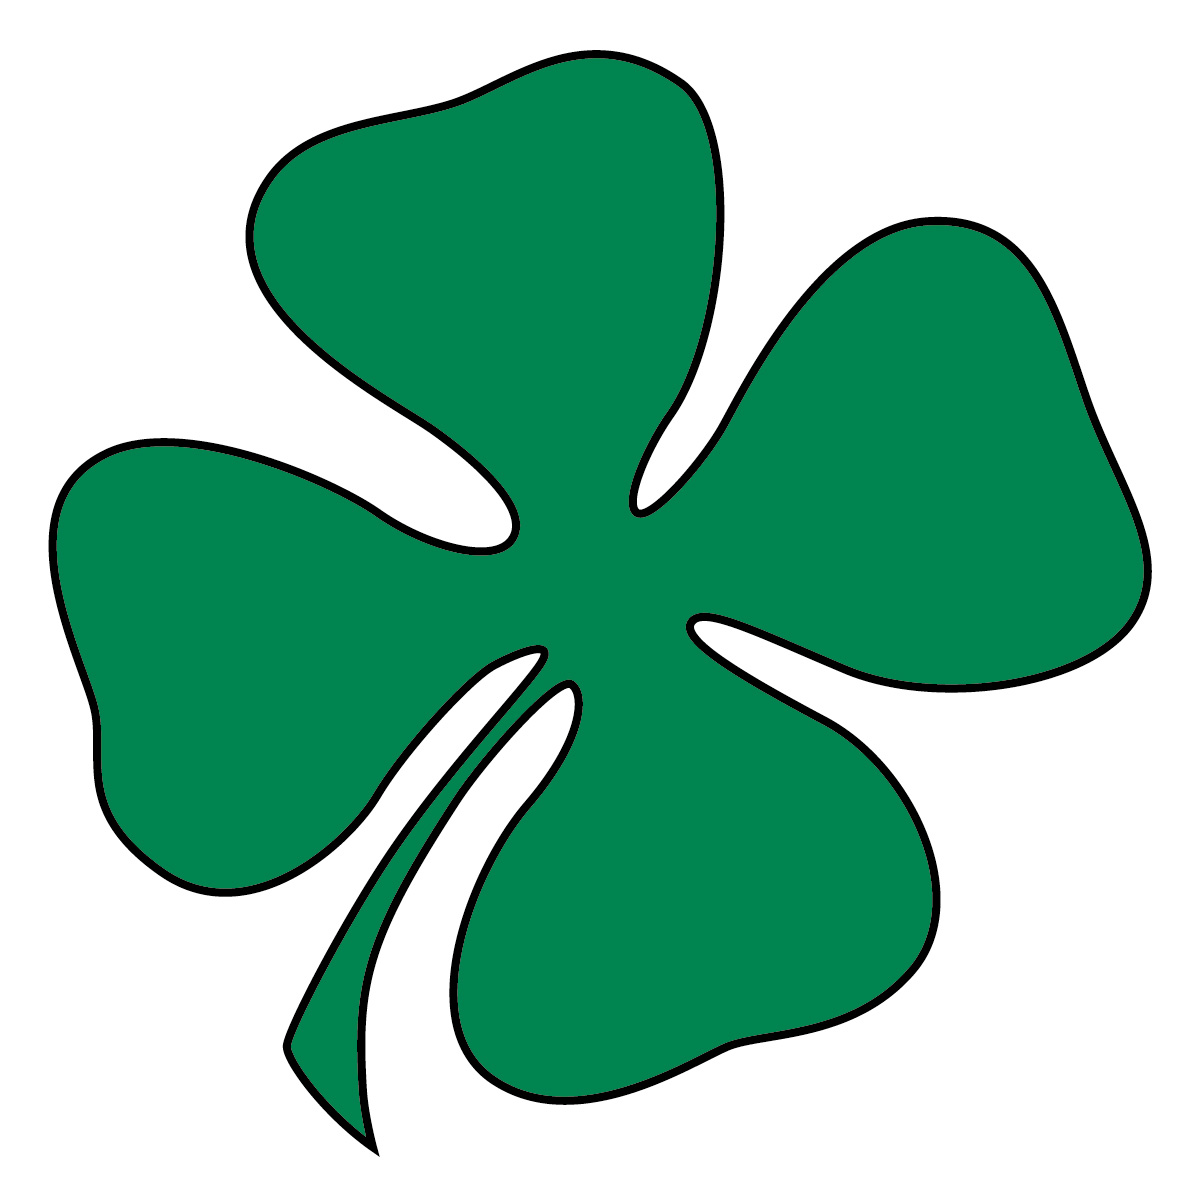 hight resolution of 1200x1200 clipart clover